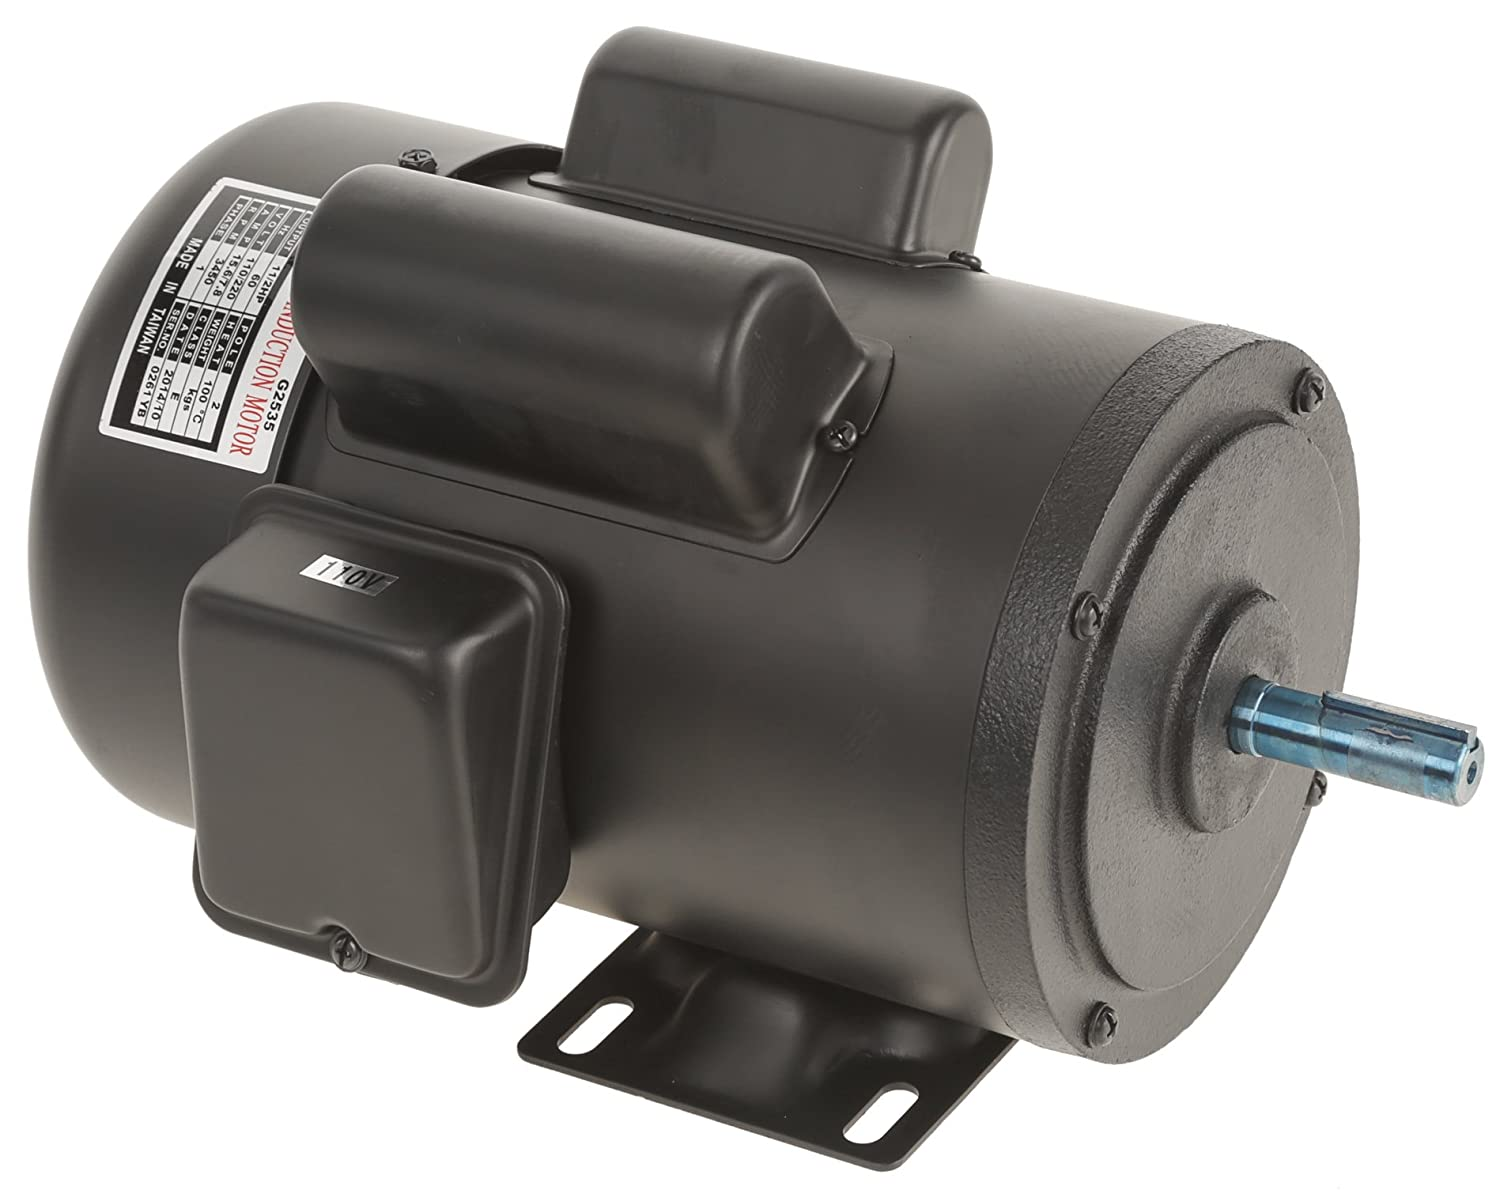 Grizzly G2535 Single-Phase Motor with 3450 RPM